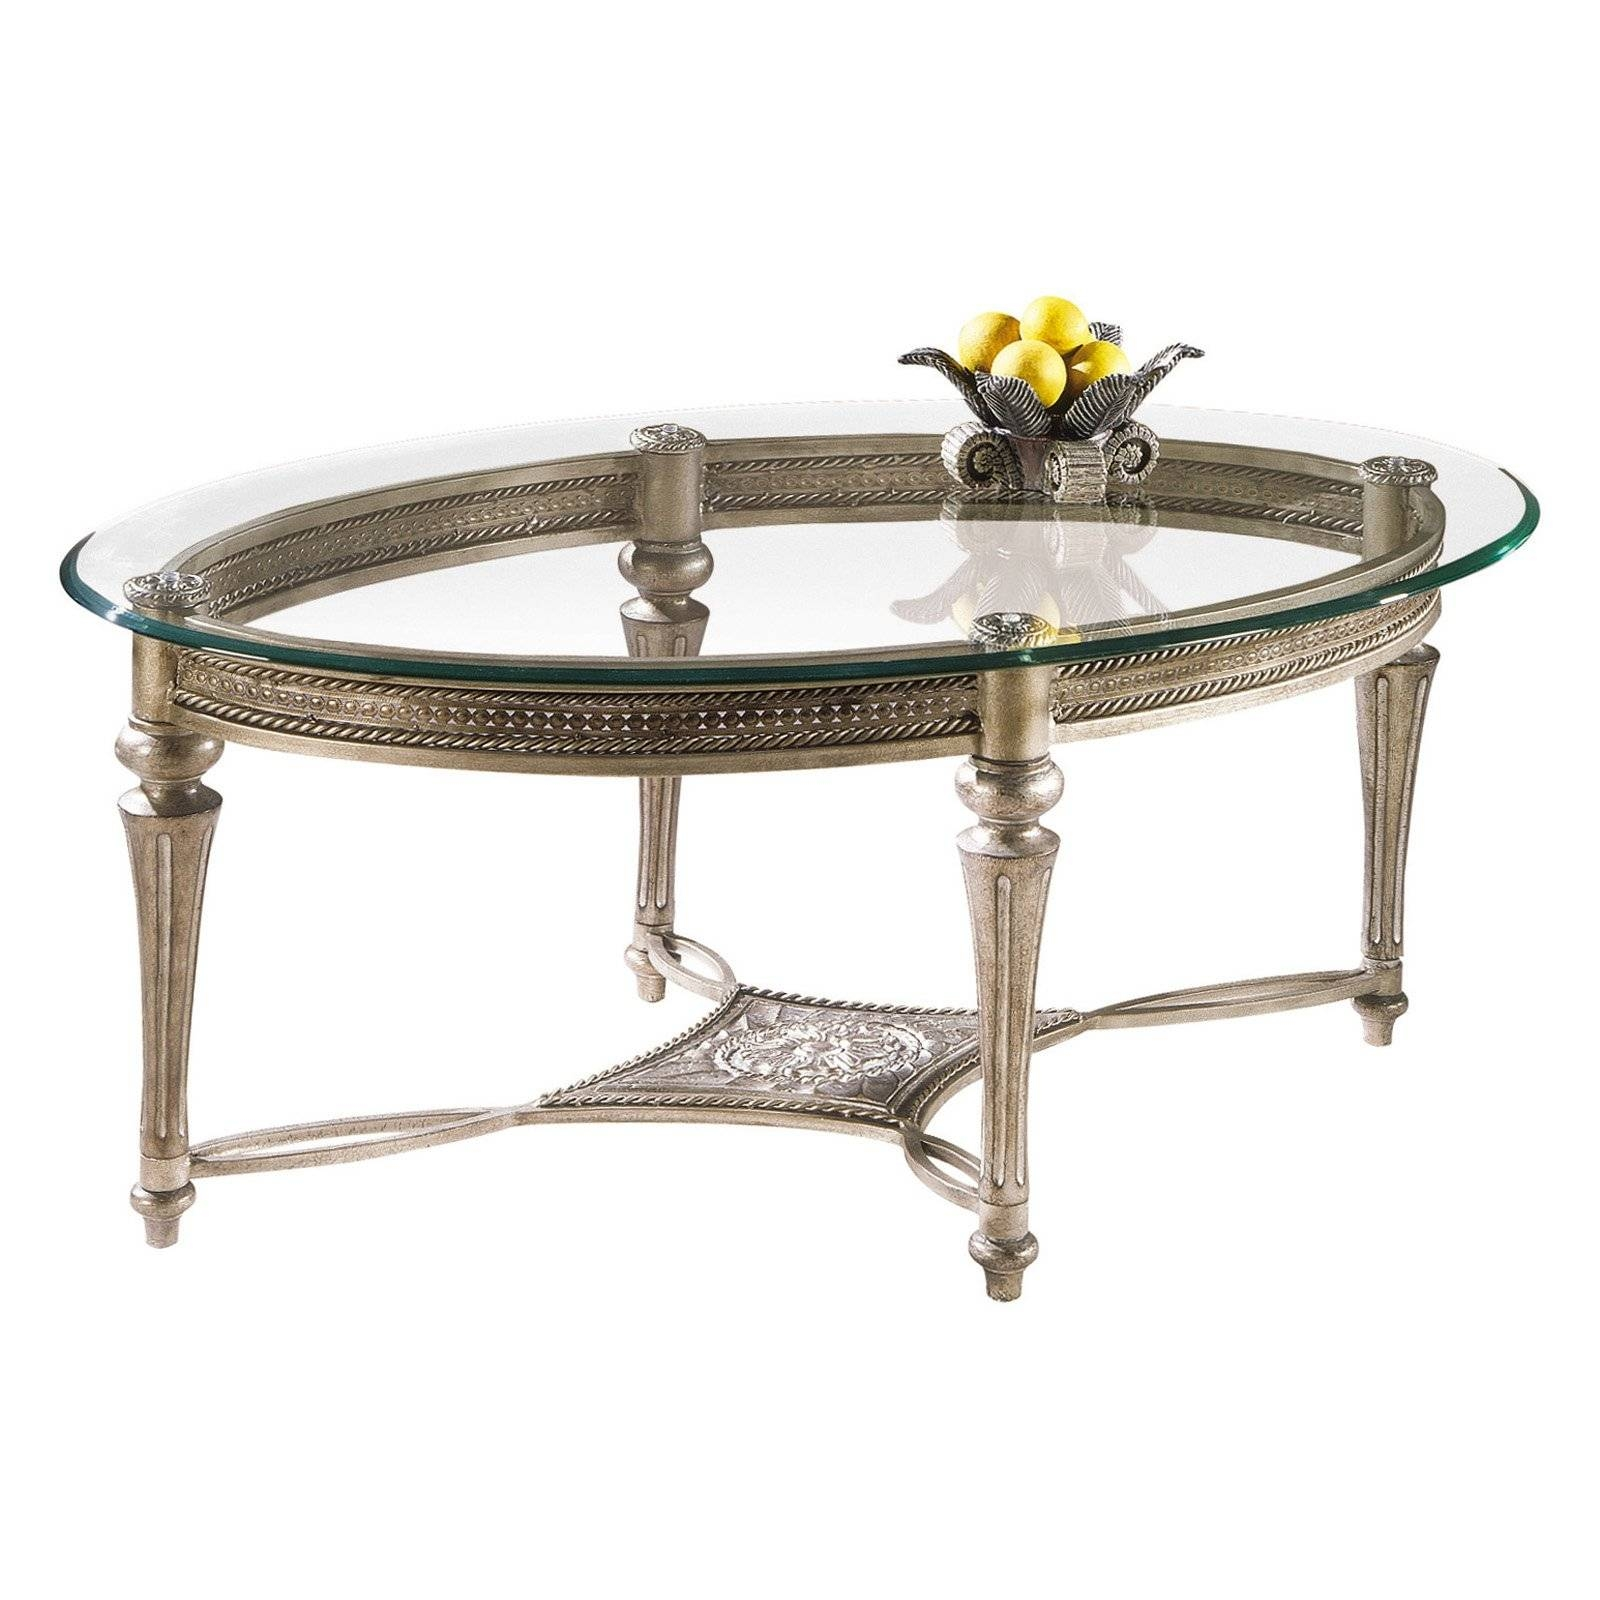 Magnussen Galloway Oval Iron And Glass Cocktail Table | Hayneedle with regard to Metal Oval Coffee Tables (Image 10 of 15)